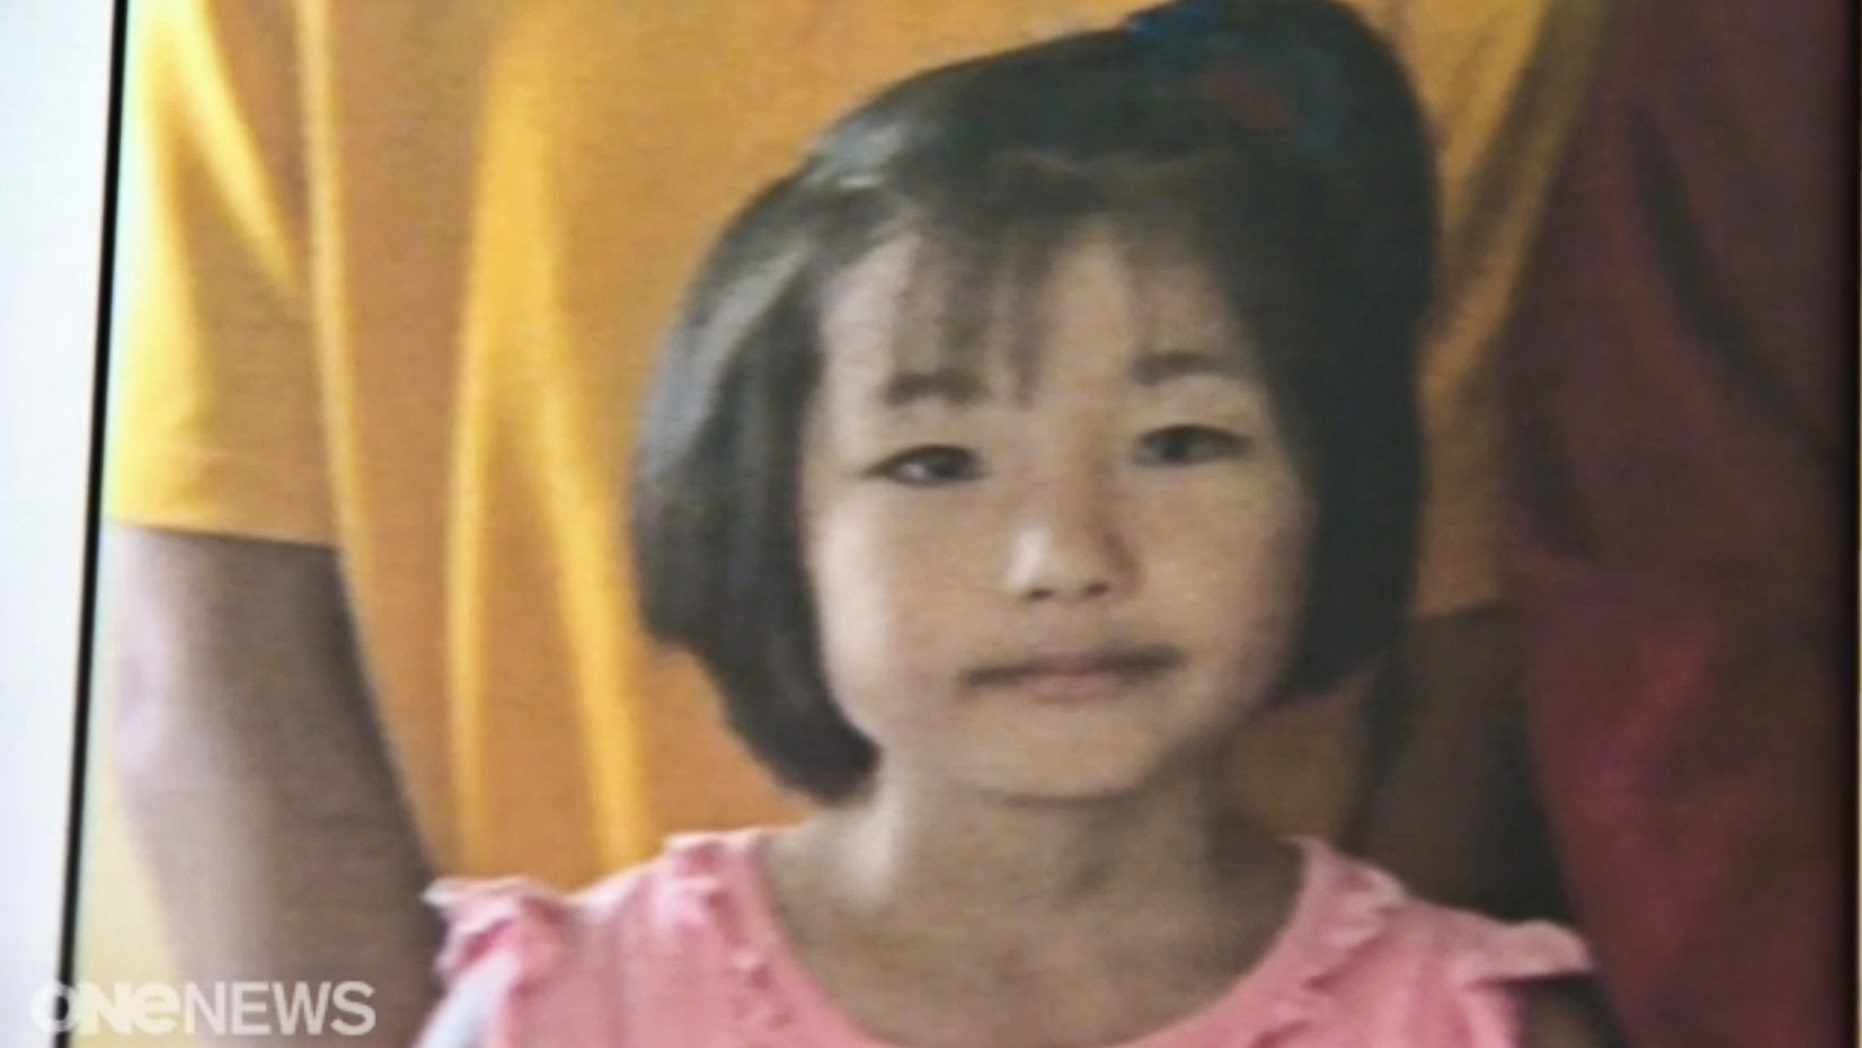 Undated FILE photo of Sakurako Uehara of Japan. New Zealand doctors said the 7-year-old Japanese girl was bitten about 100 times during a dog mauling on March 3 at the property of family friends in Murupara, New Zealand. Hospital officials said Friday the girl remained in a critical but stable condition. (OneNews)